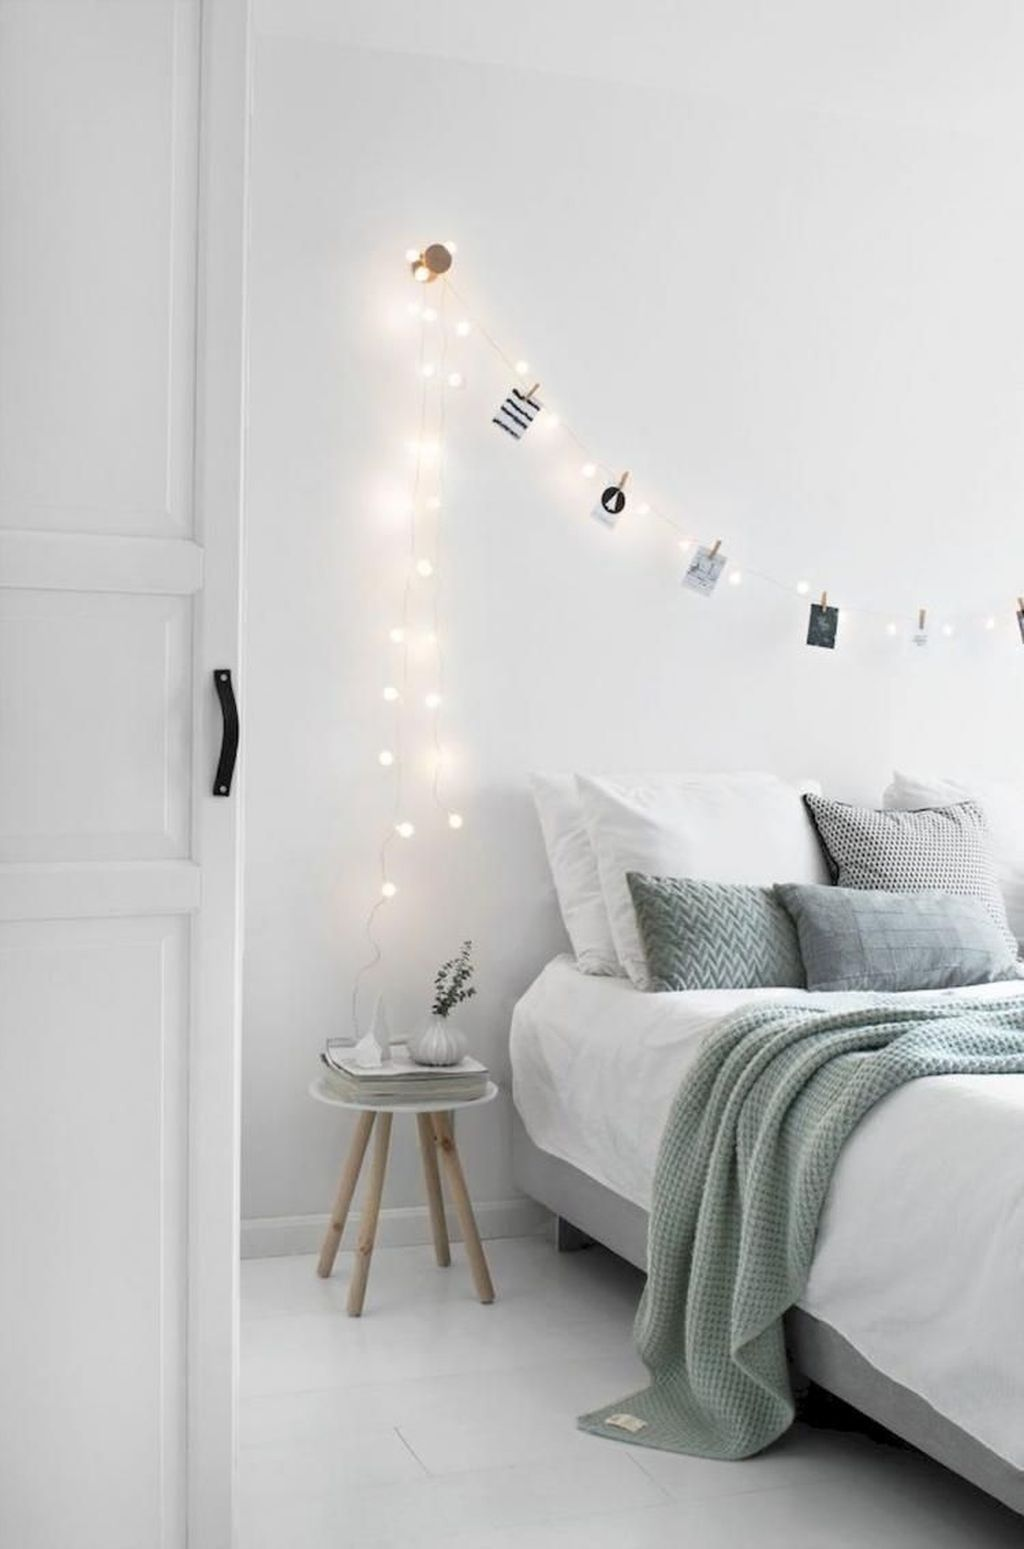 20 Simple Wall Bedroom Diy Decor Ideas Bedroomaesthetic Diy Bedroom Decor Inspiration Bedroom Inspirations Bedroom Interior